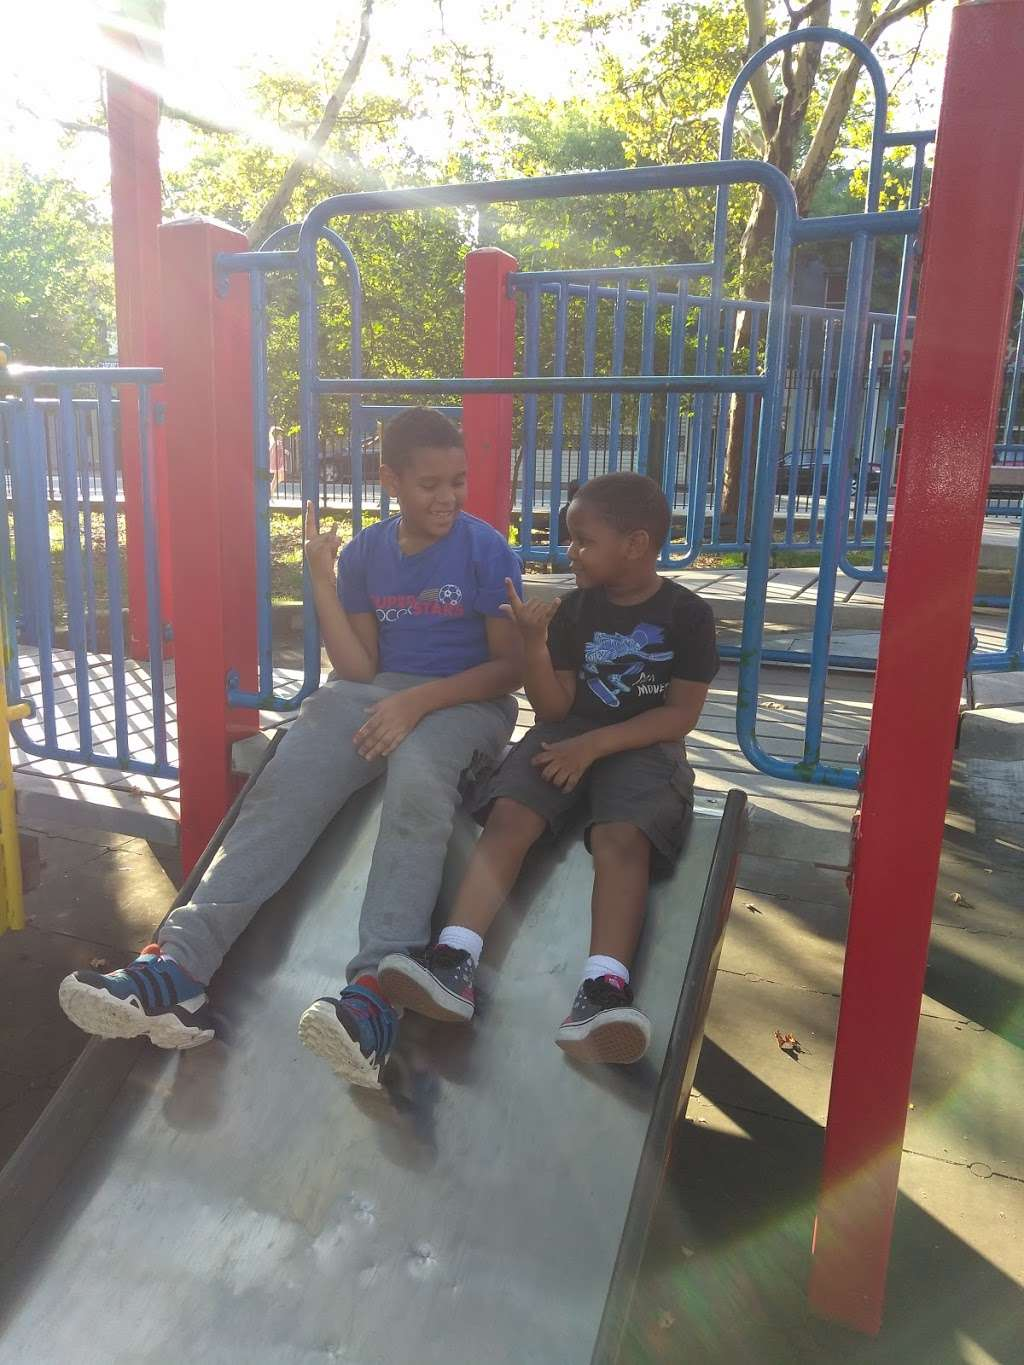 Youth Village Playground - park  | Photo 10 of 10 | Address: 1181 Boston Rd, Bronx, NY 10456, USA | Phone: (212) 639-9675